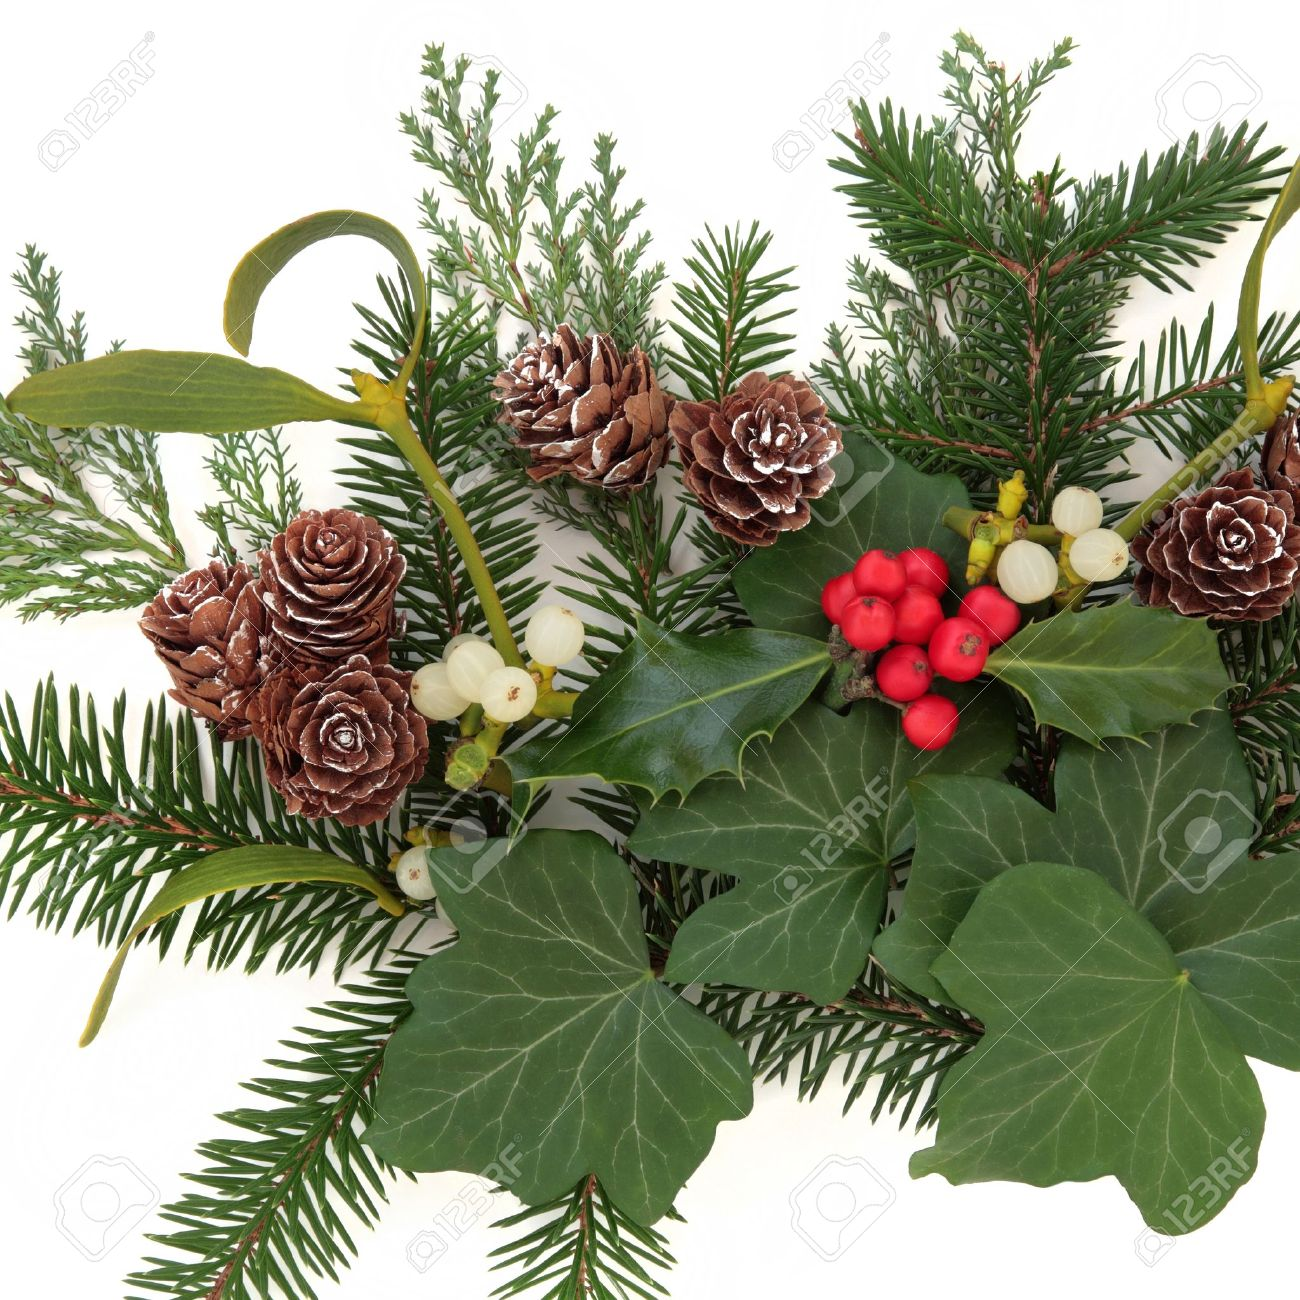 Christmas floral arrangement with holly, ivy, mistletoe, pinecones and winter greenery over white background Stock Photo - 21539857